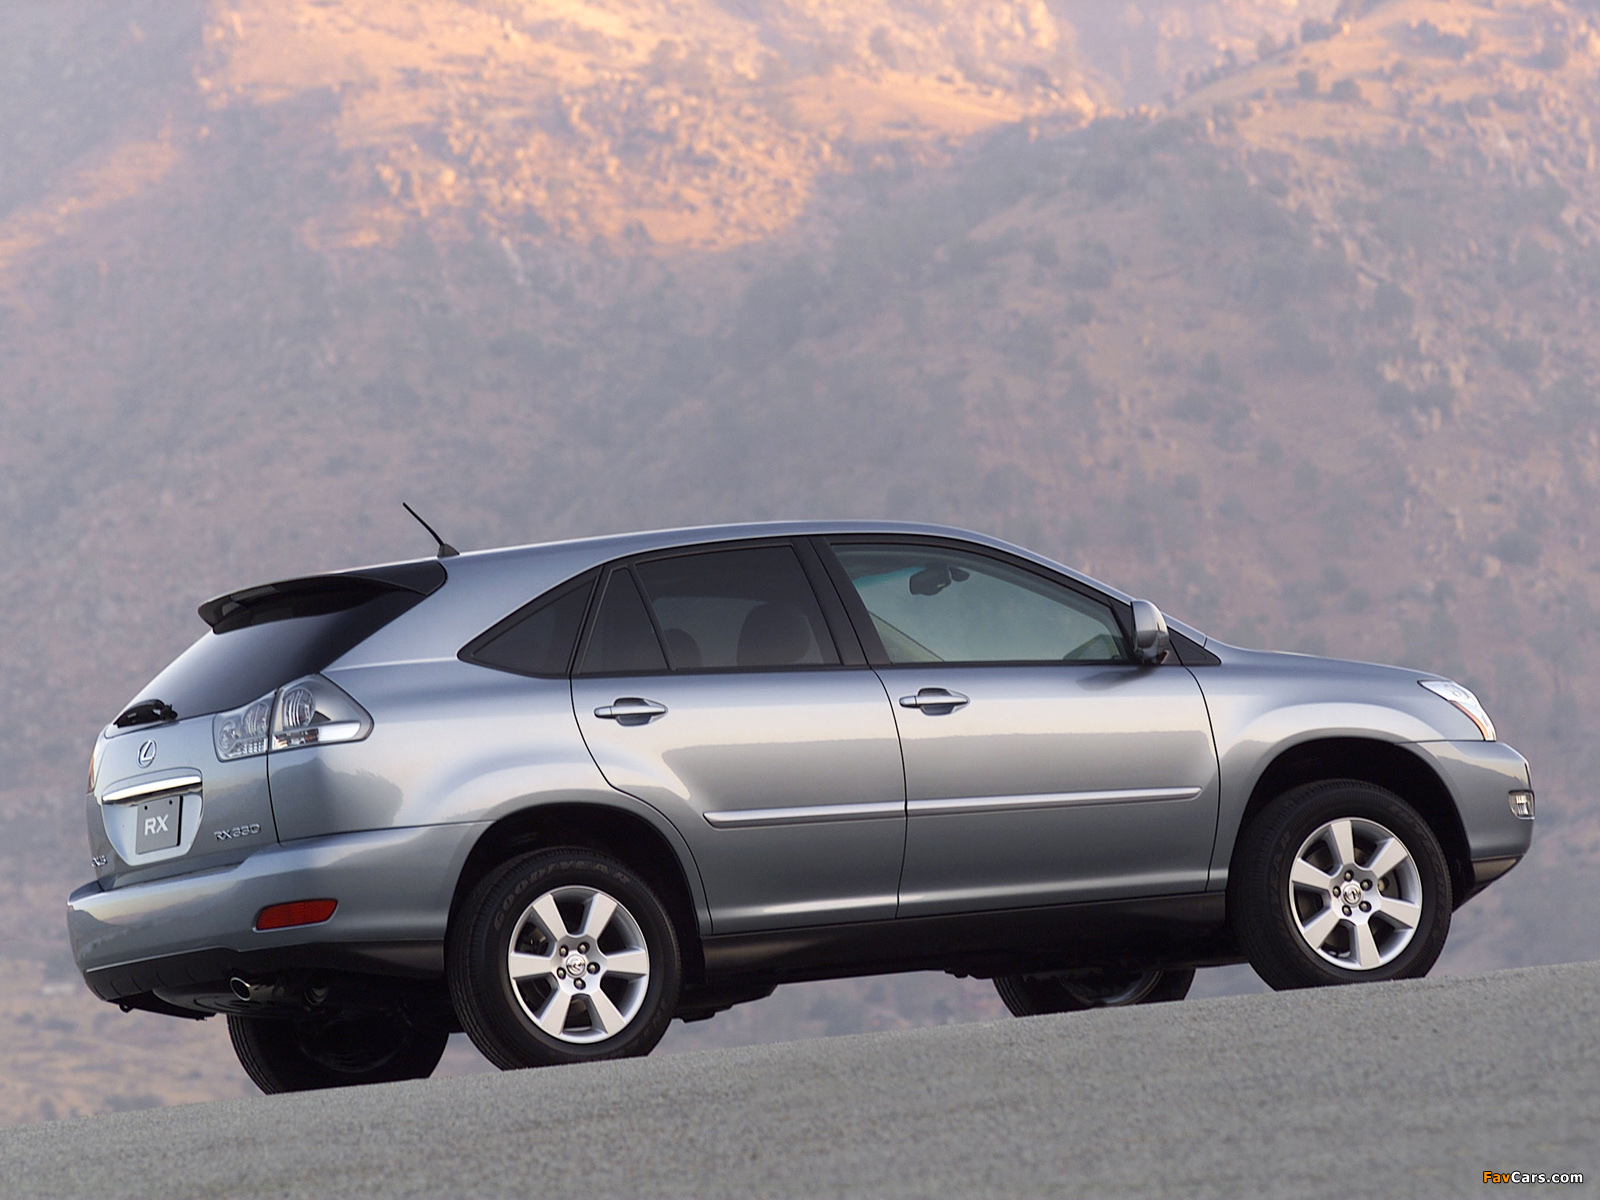 Lexus rx330 manuals free download pdf download 2005 lexus rx330 owner manual read more fandeluxe Choice Image